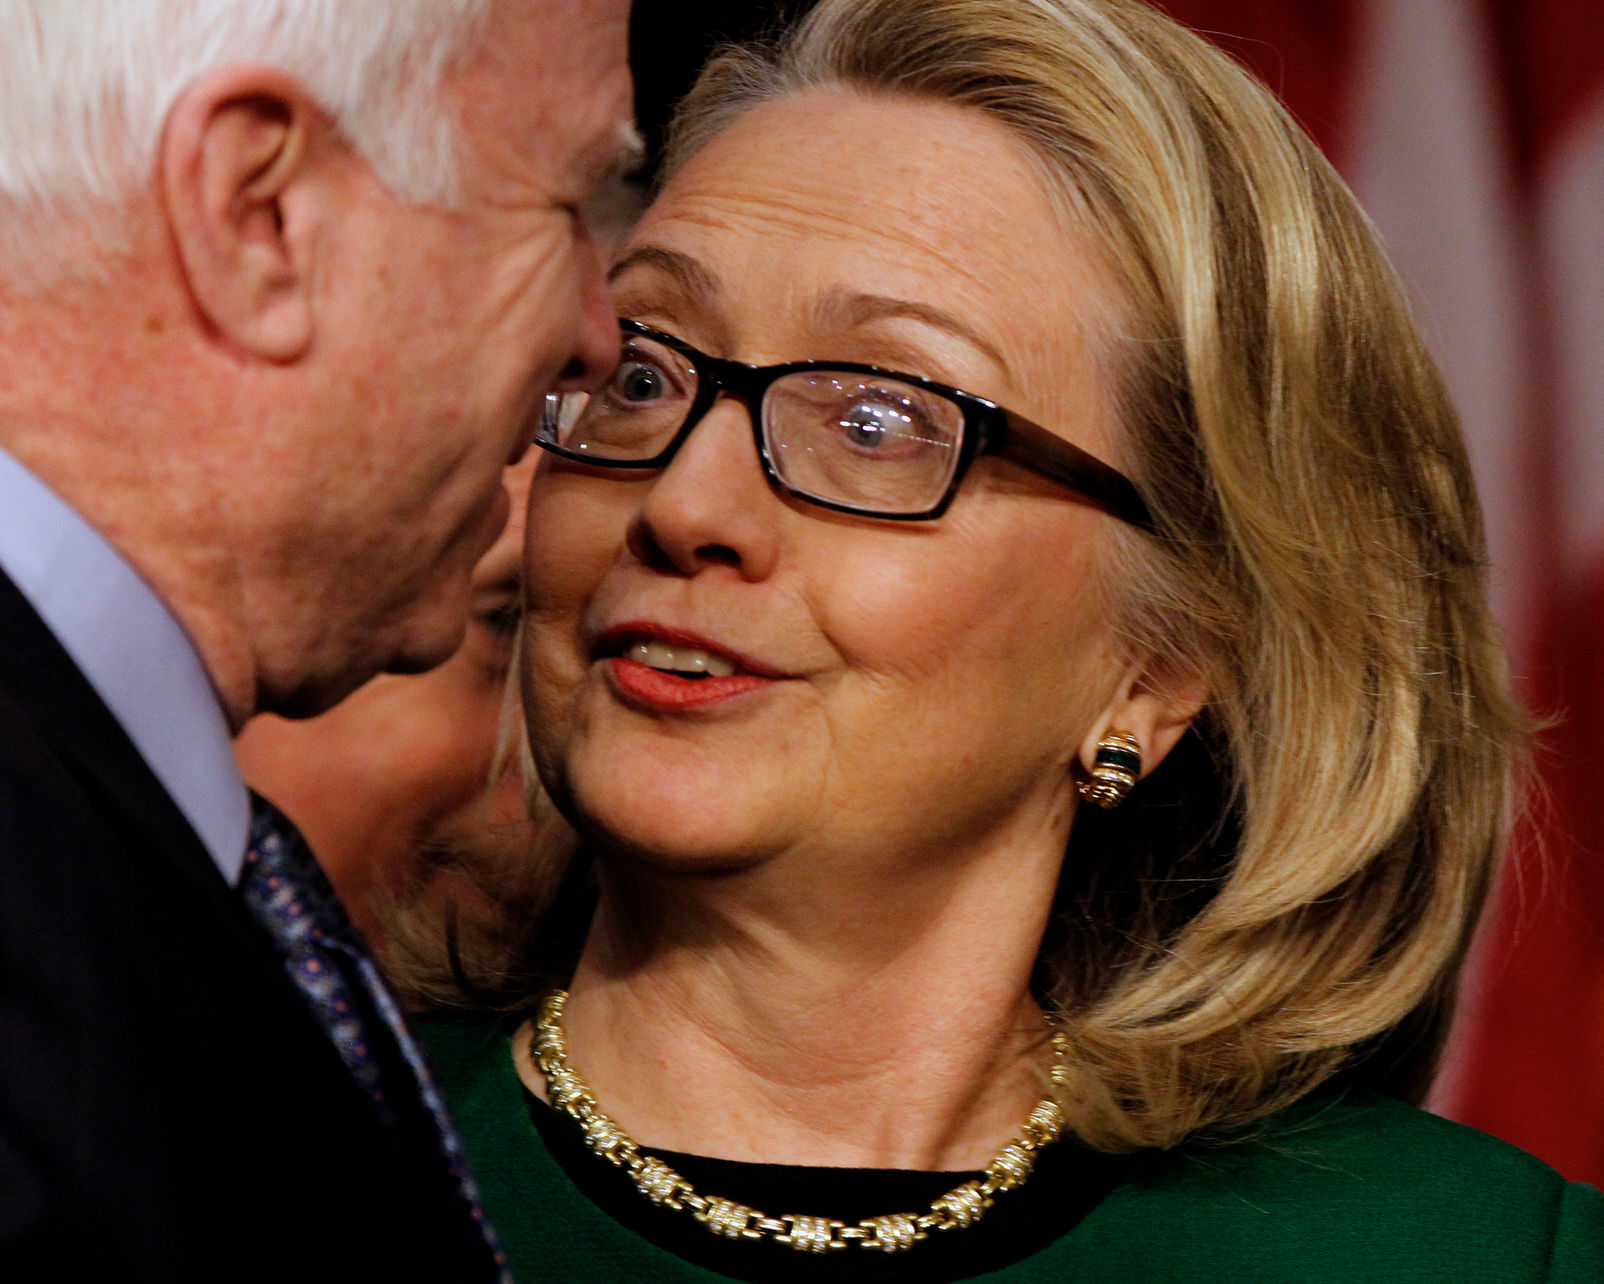 Secretary of State Hillary Clinton greets Senator John McCain (R-AZ) as she arrives to testify before the Senate Foreign Relations Committee hearing on the terrorist attacks on the U.S. Embassy in Benghazi, in Washington, DC on January 23, 2013. UPI/Molly Riley